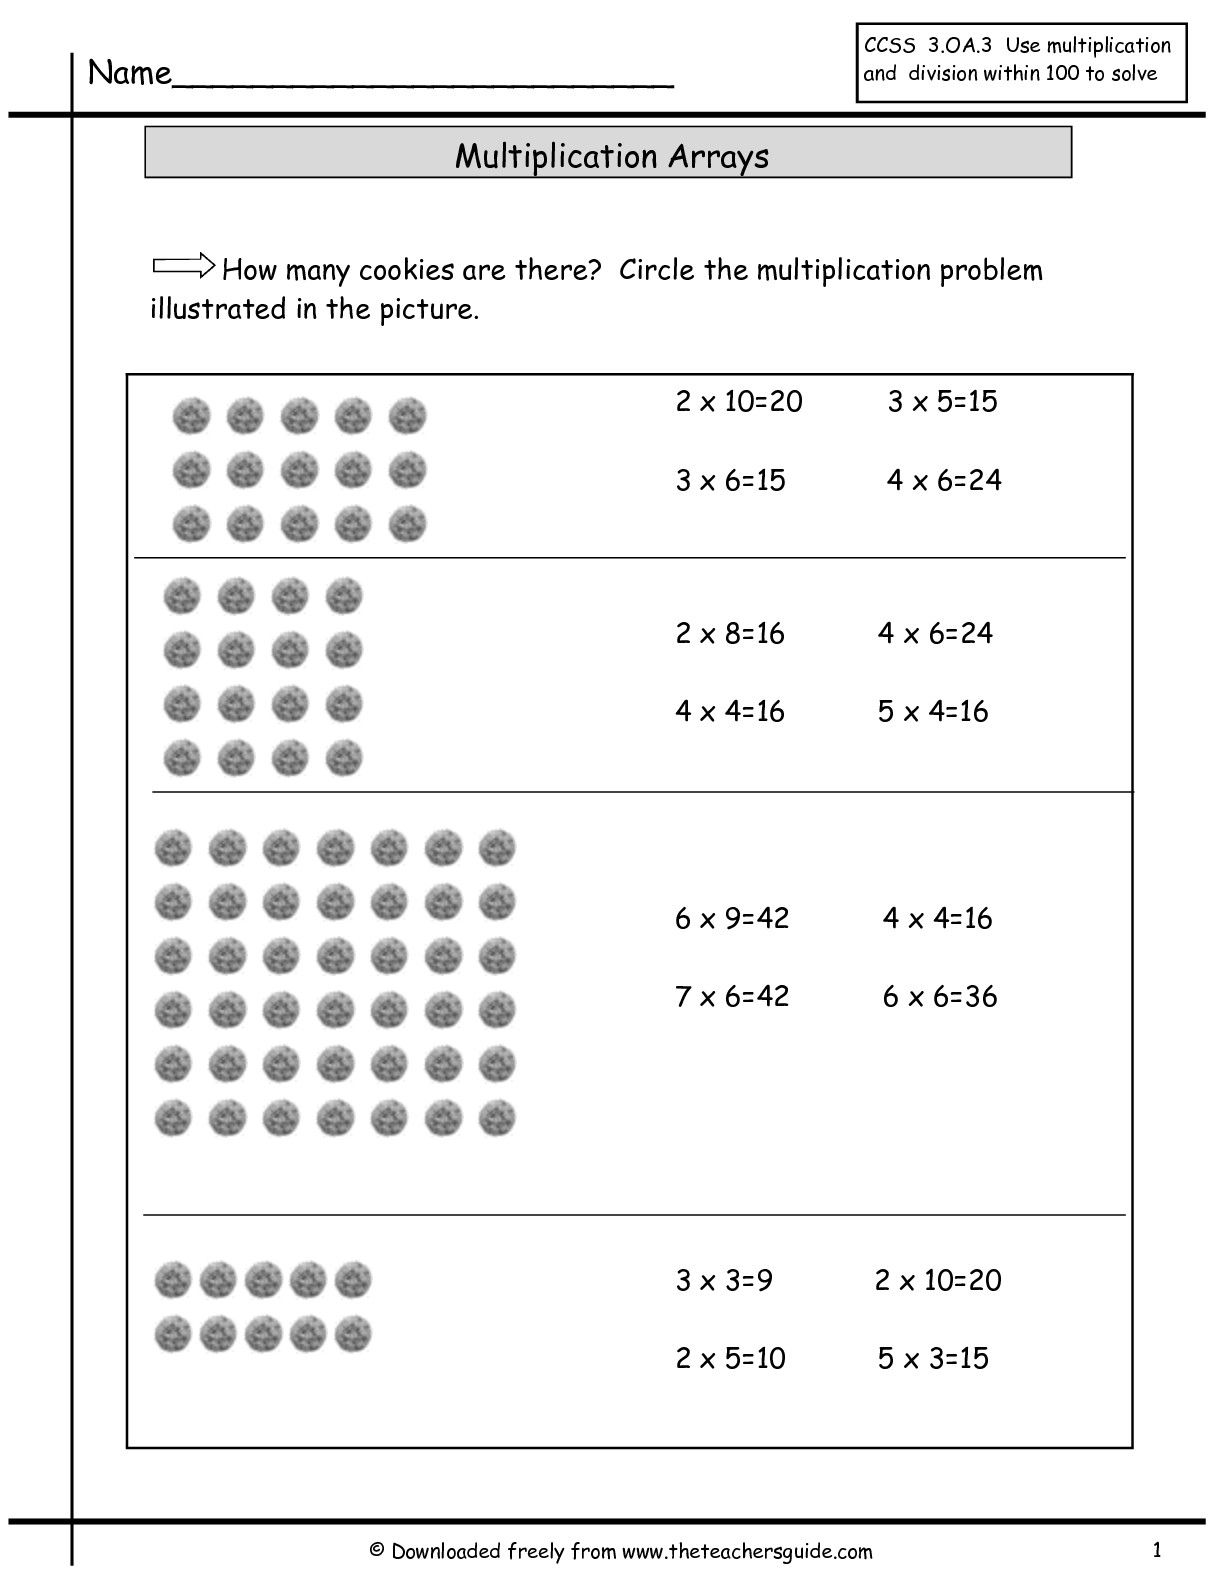 Multiplication Array Worksheets From The Teacher S Guide Array Worksheets Multiplication Arrays Math Worksheets